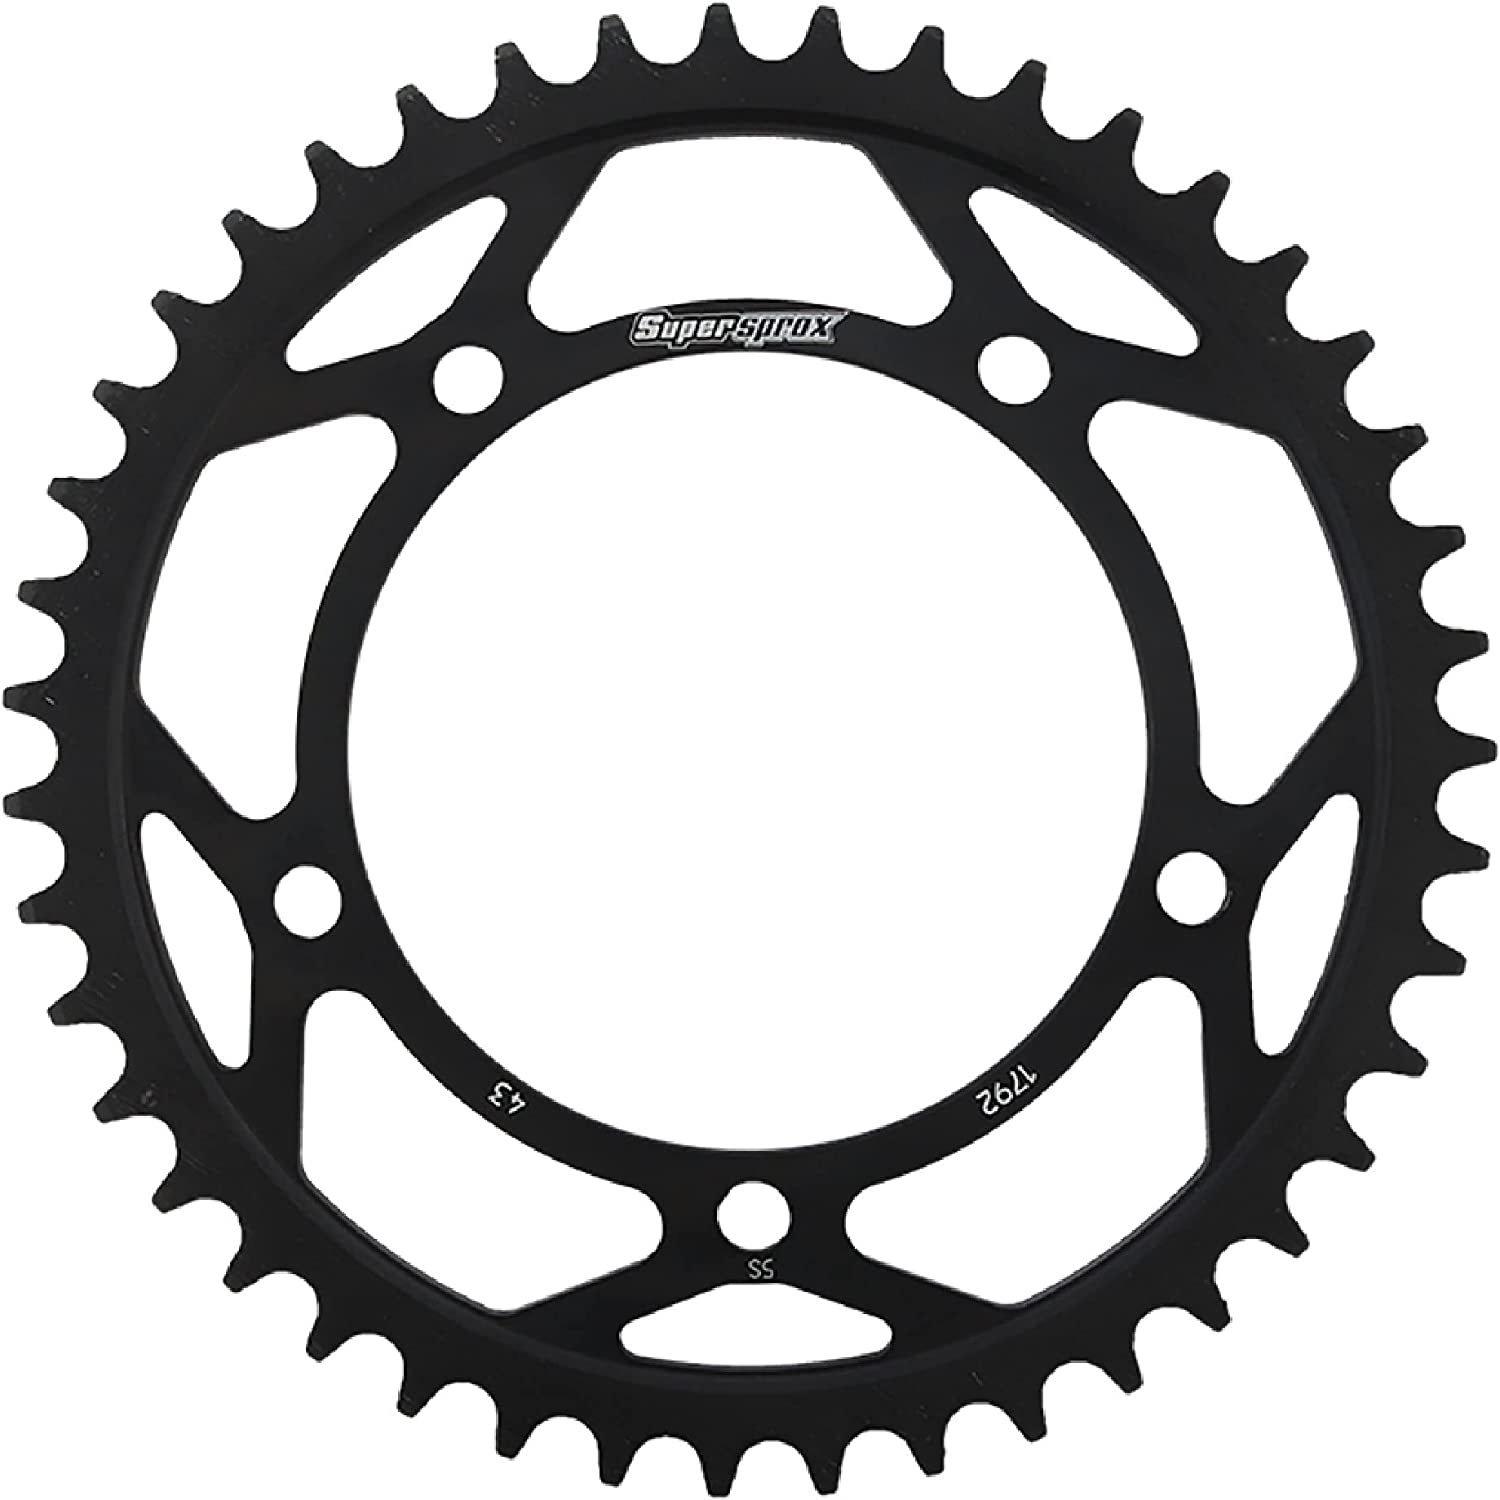 Outstanding Supersprox RFE-1792-43-BLK Rear Steel For Max 51% OFF Black Sprocket Triumph